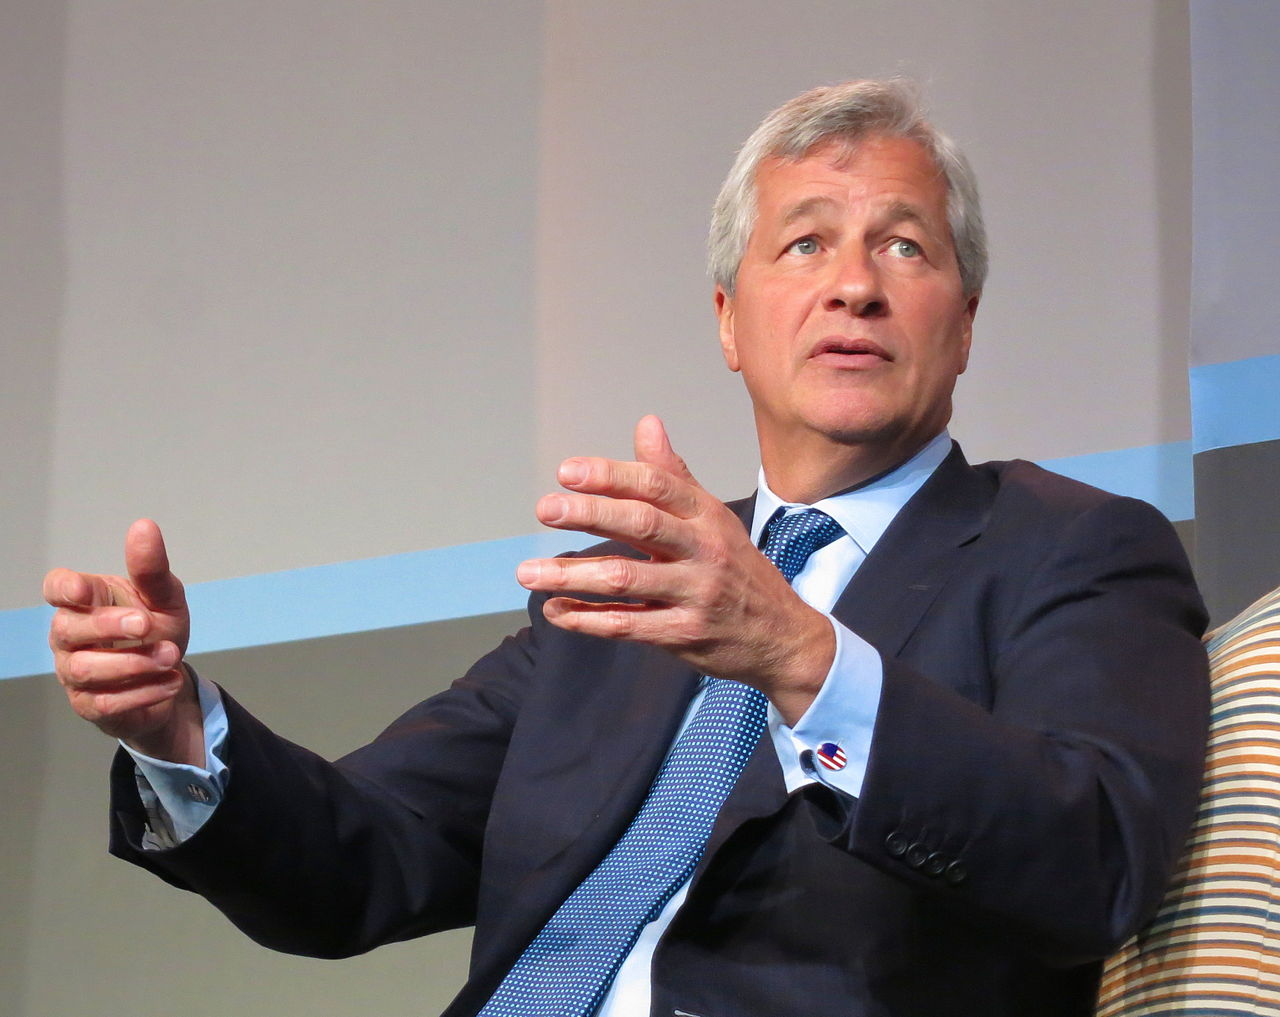 JP Morgan's Jamie Dimon says cyber is the biggest vulnerability the financial system